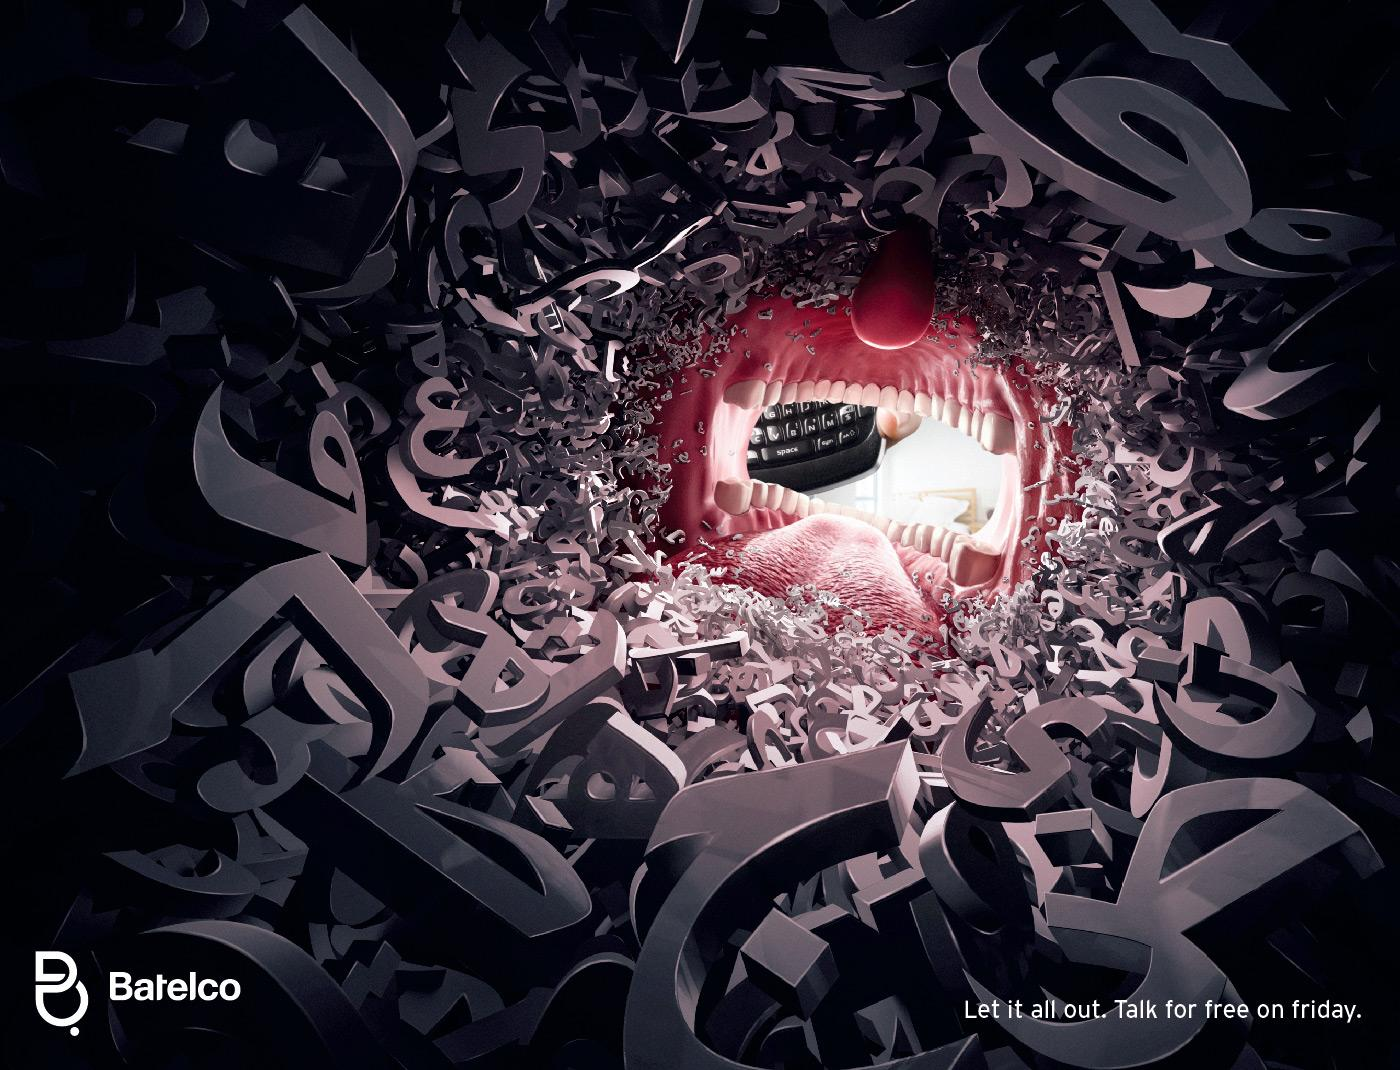 Batelco Print Ad -  Let it all out, Arabic